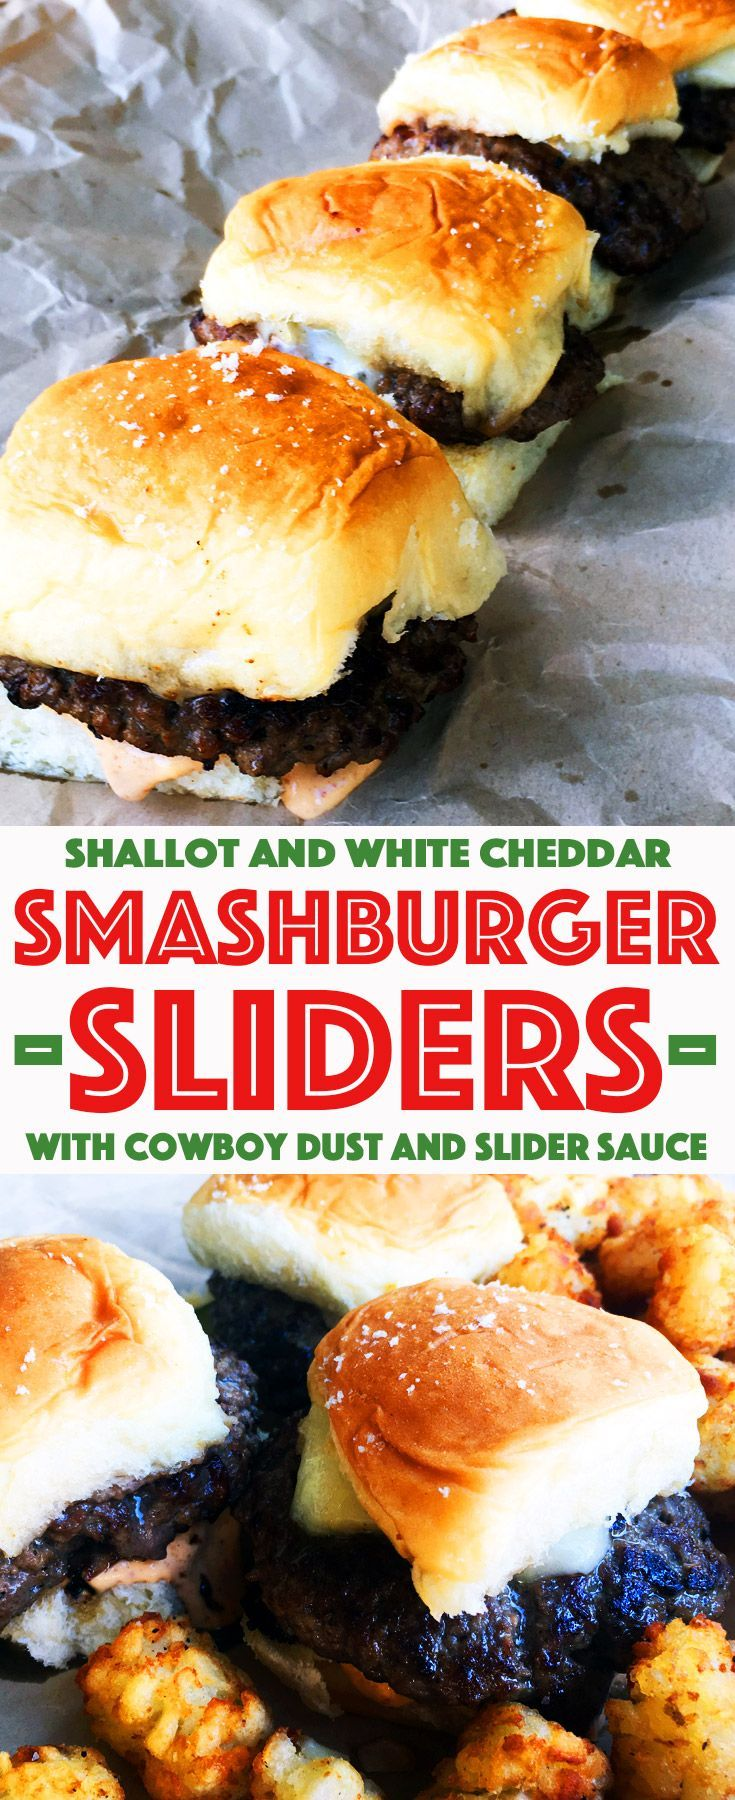 Elevate your burgers with these Shallot and White Cheddar Smashburger Sliders – Cherry and Spice